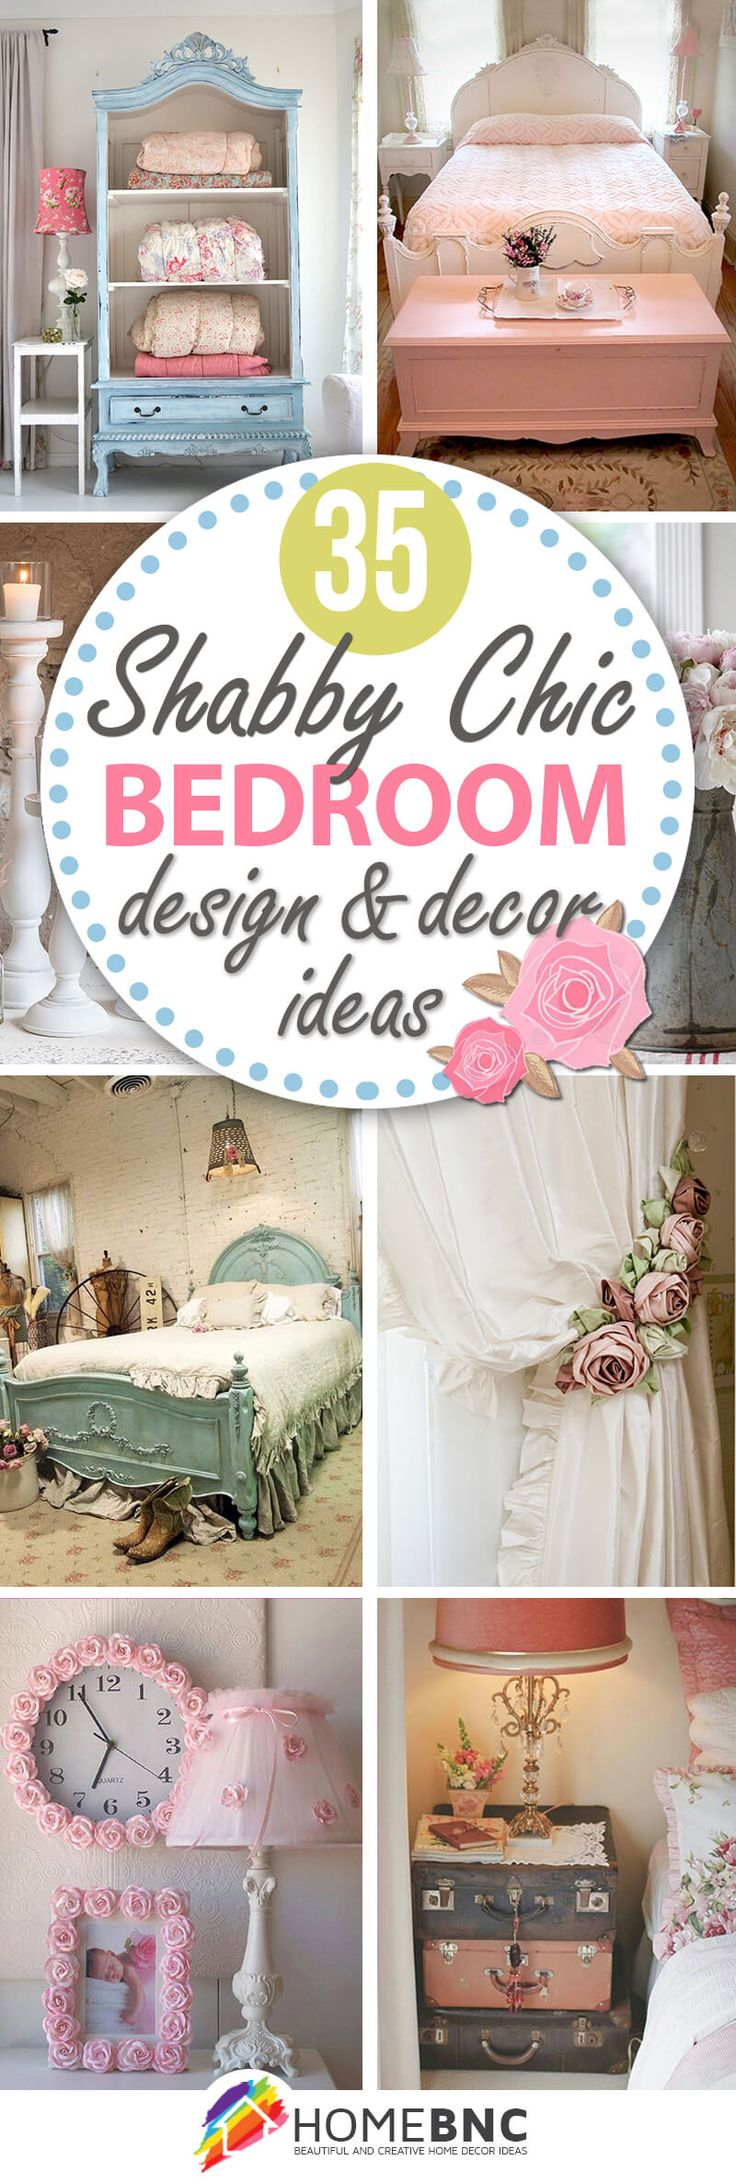 Vintage shabby chic bedroom